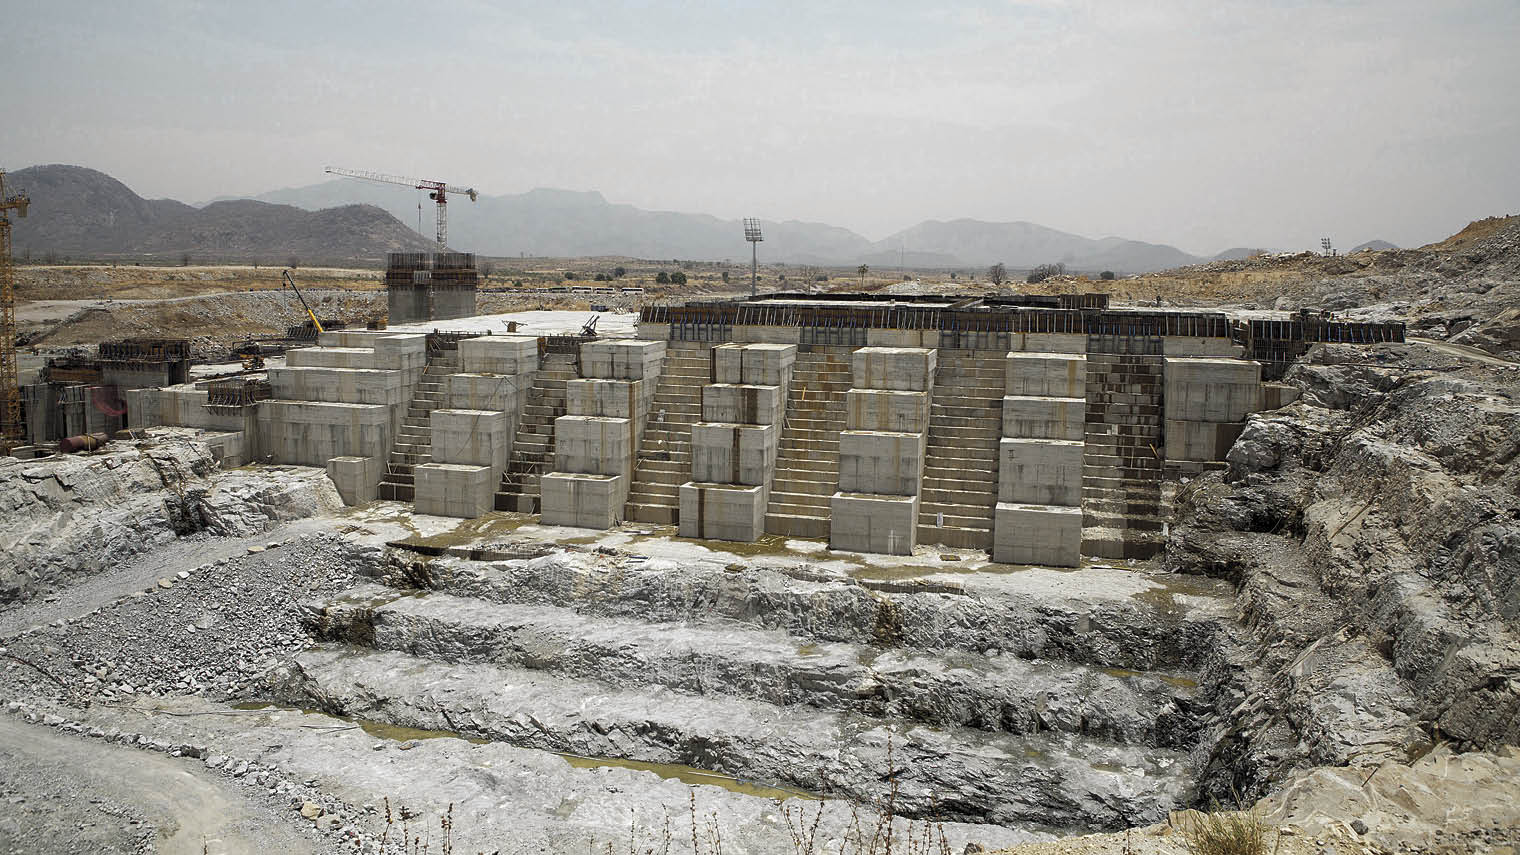 Ethiopia is self-funding the new 6,000MW Grand Ethiopian Renaissance Dam, which will be Africa's largest when completed